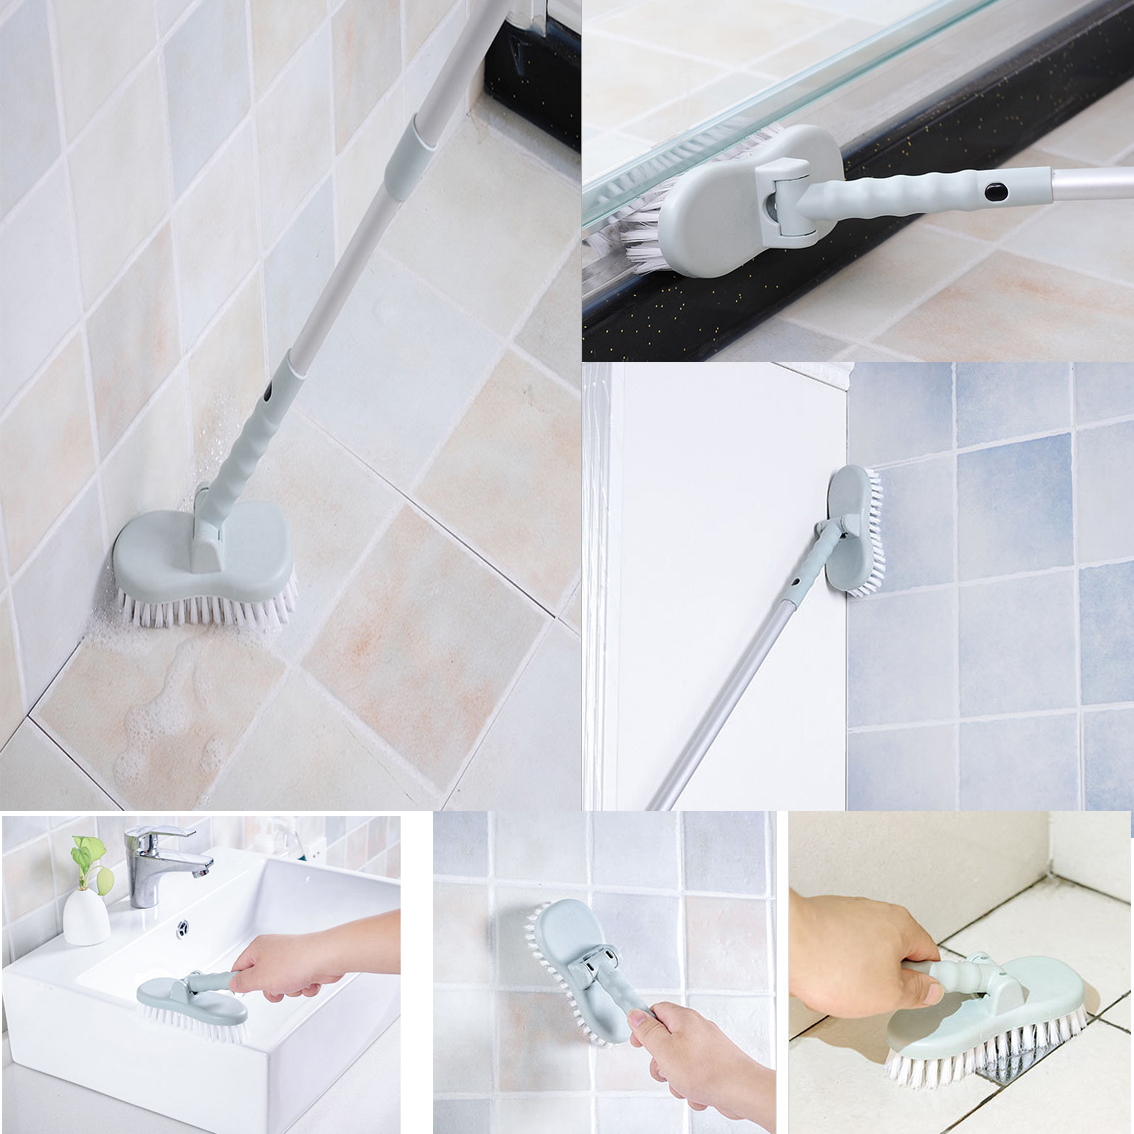 Spring Cleaning Adjust Bathroom Wall Floors Scrub Bathtub Tile Long ...